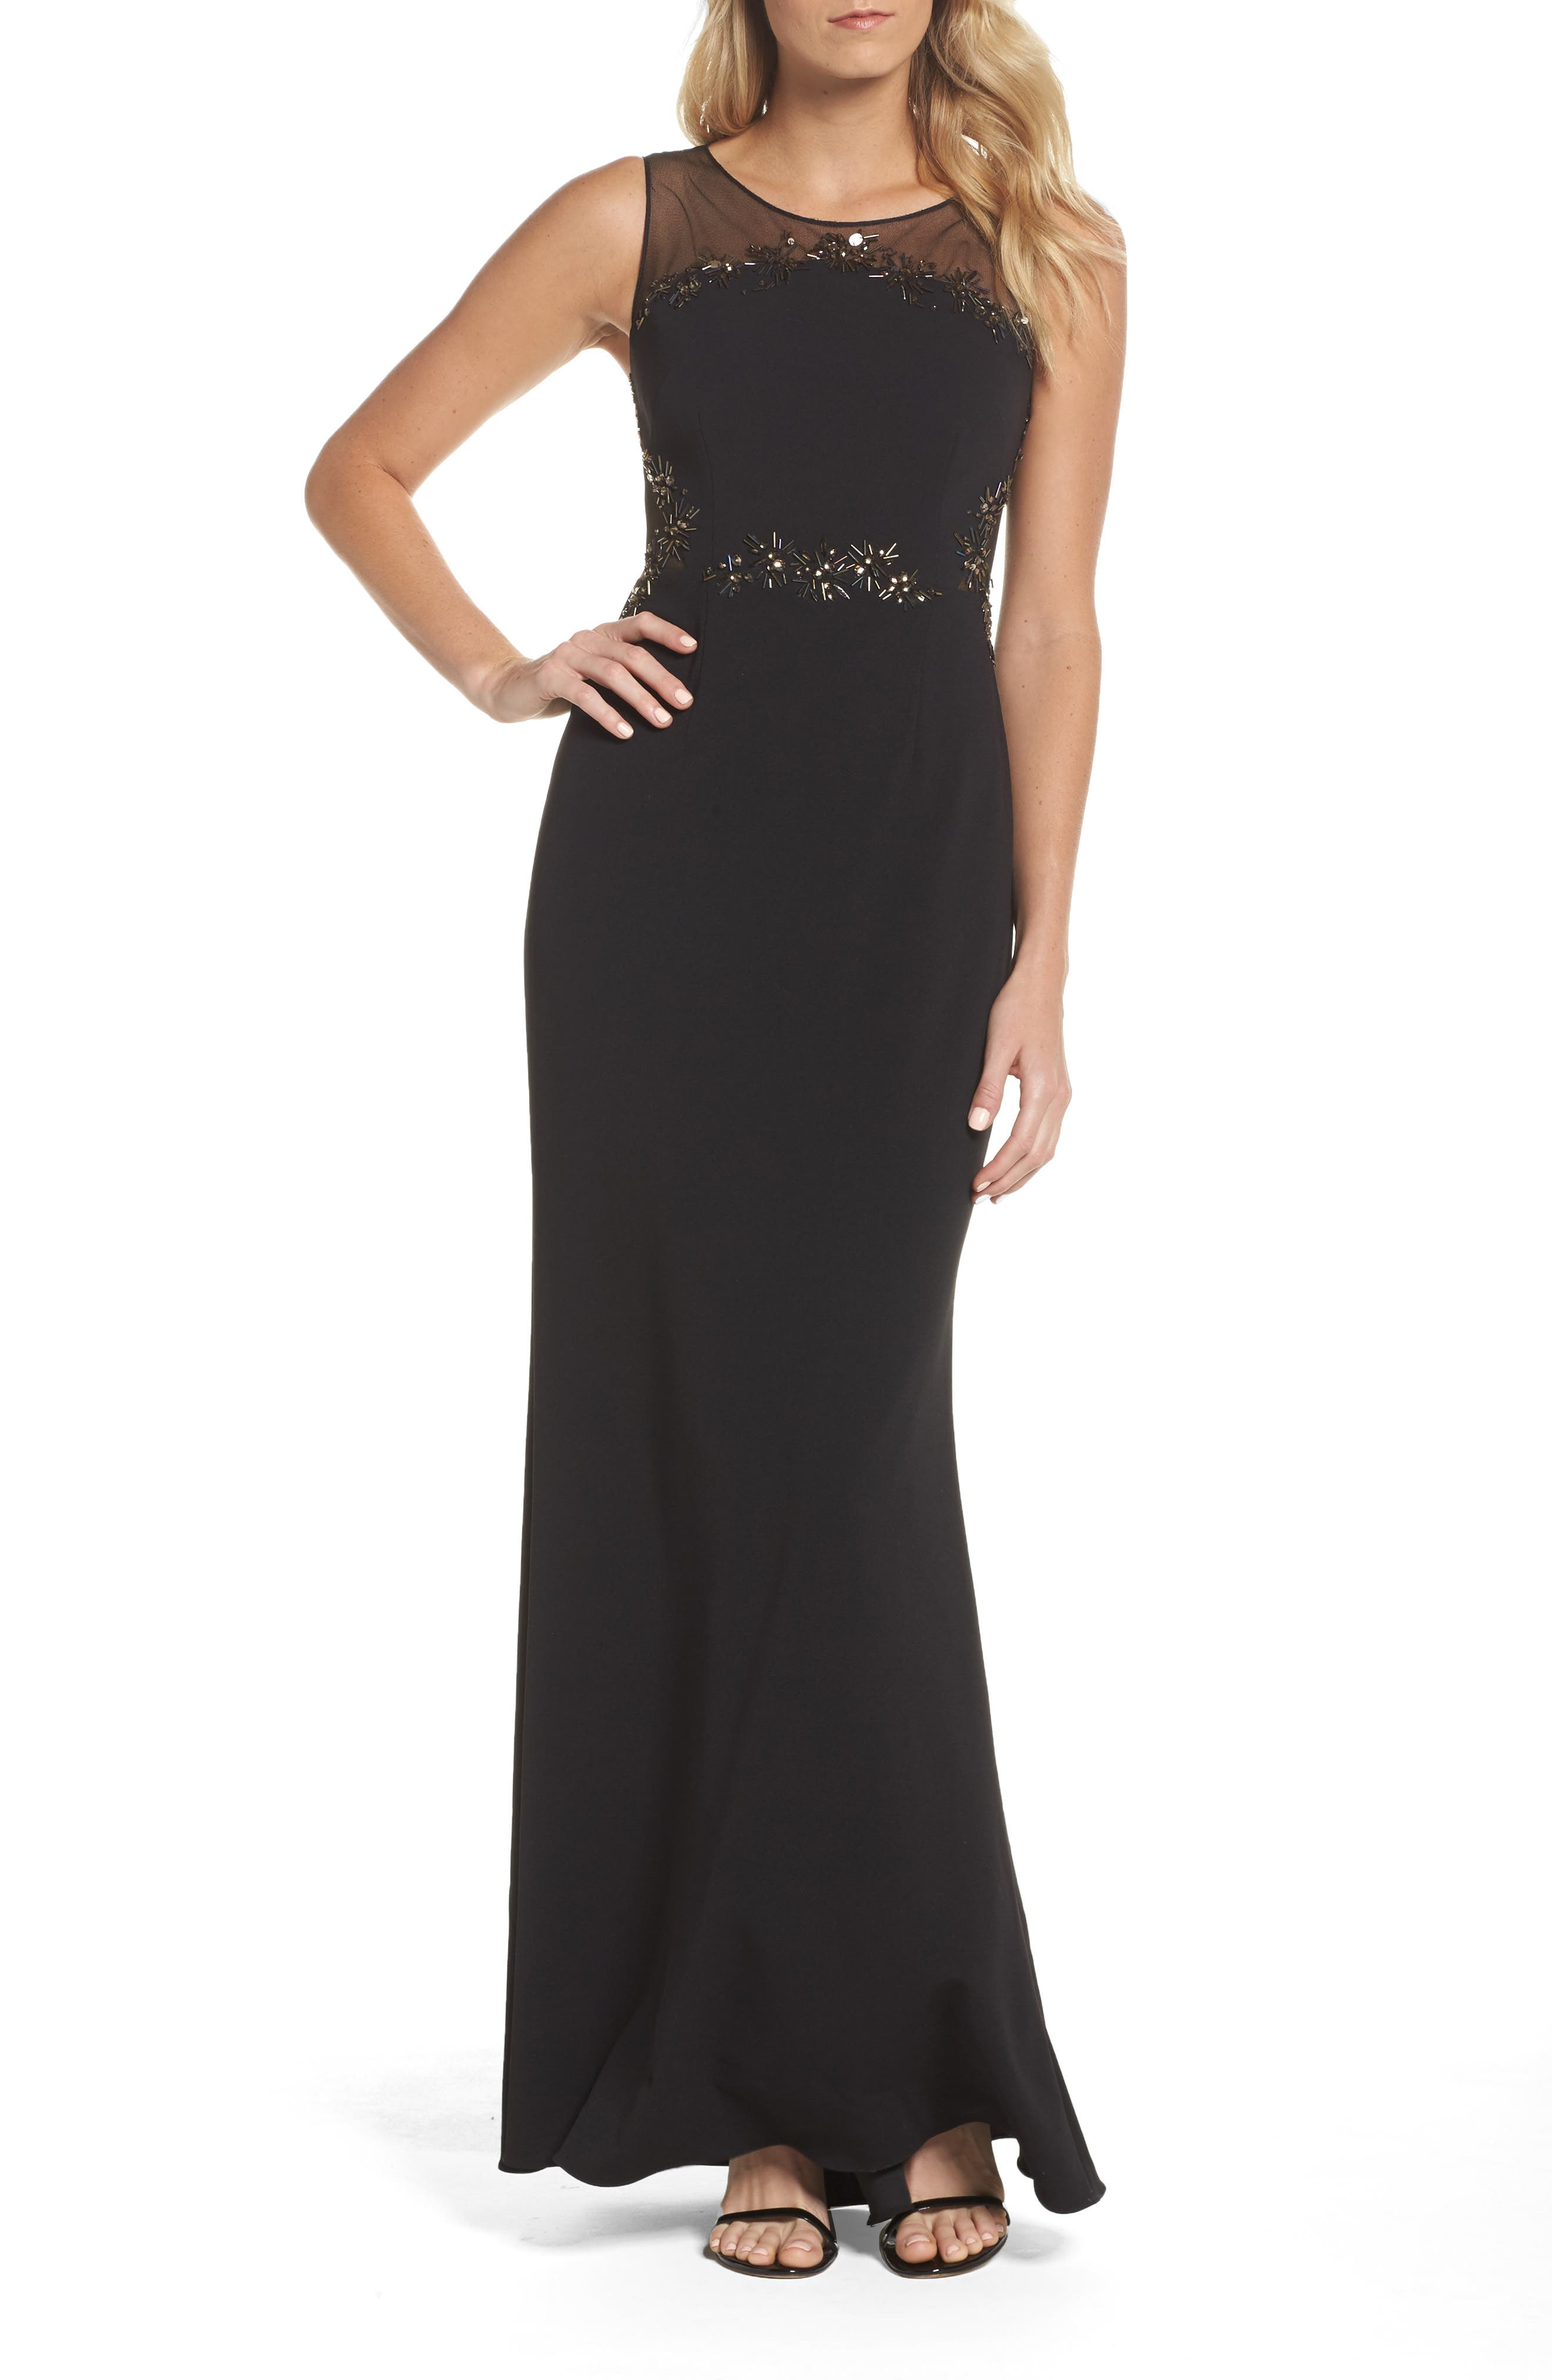 Alternate Image 1 Selected - Adrianna Papell Embellished Knit Crepe Gown